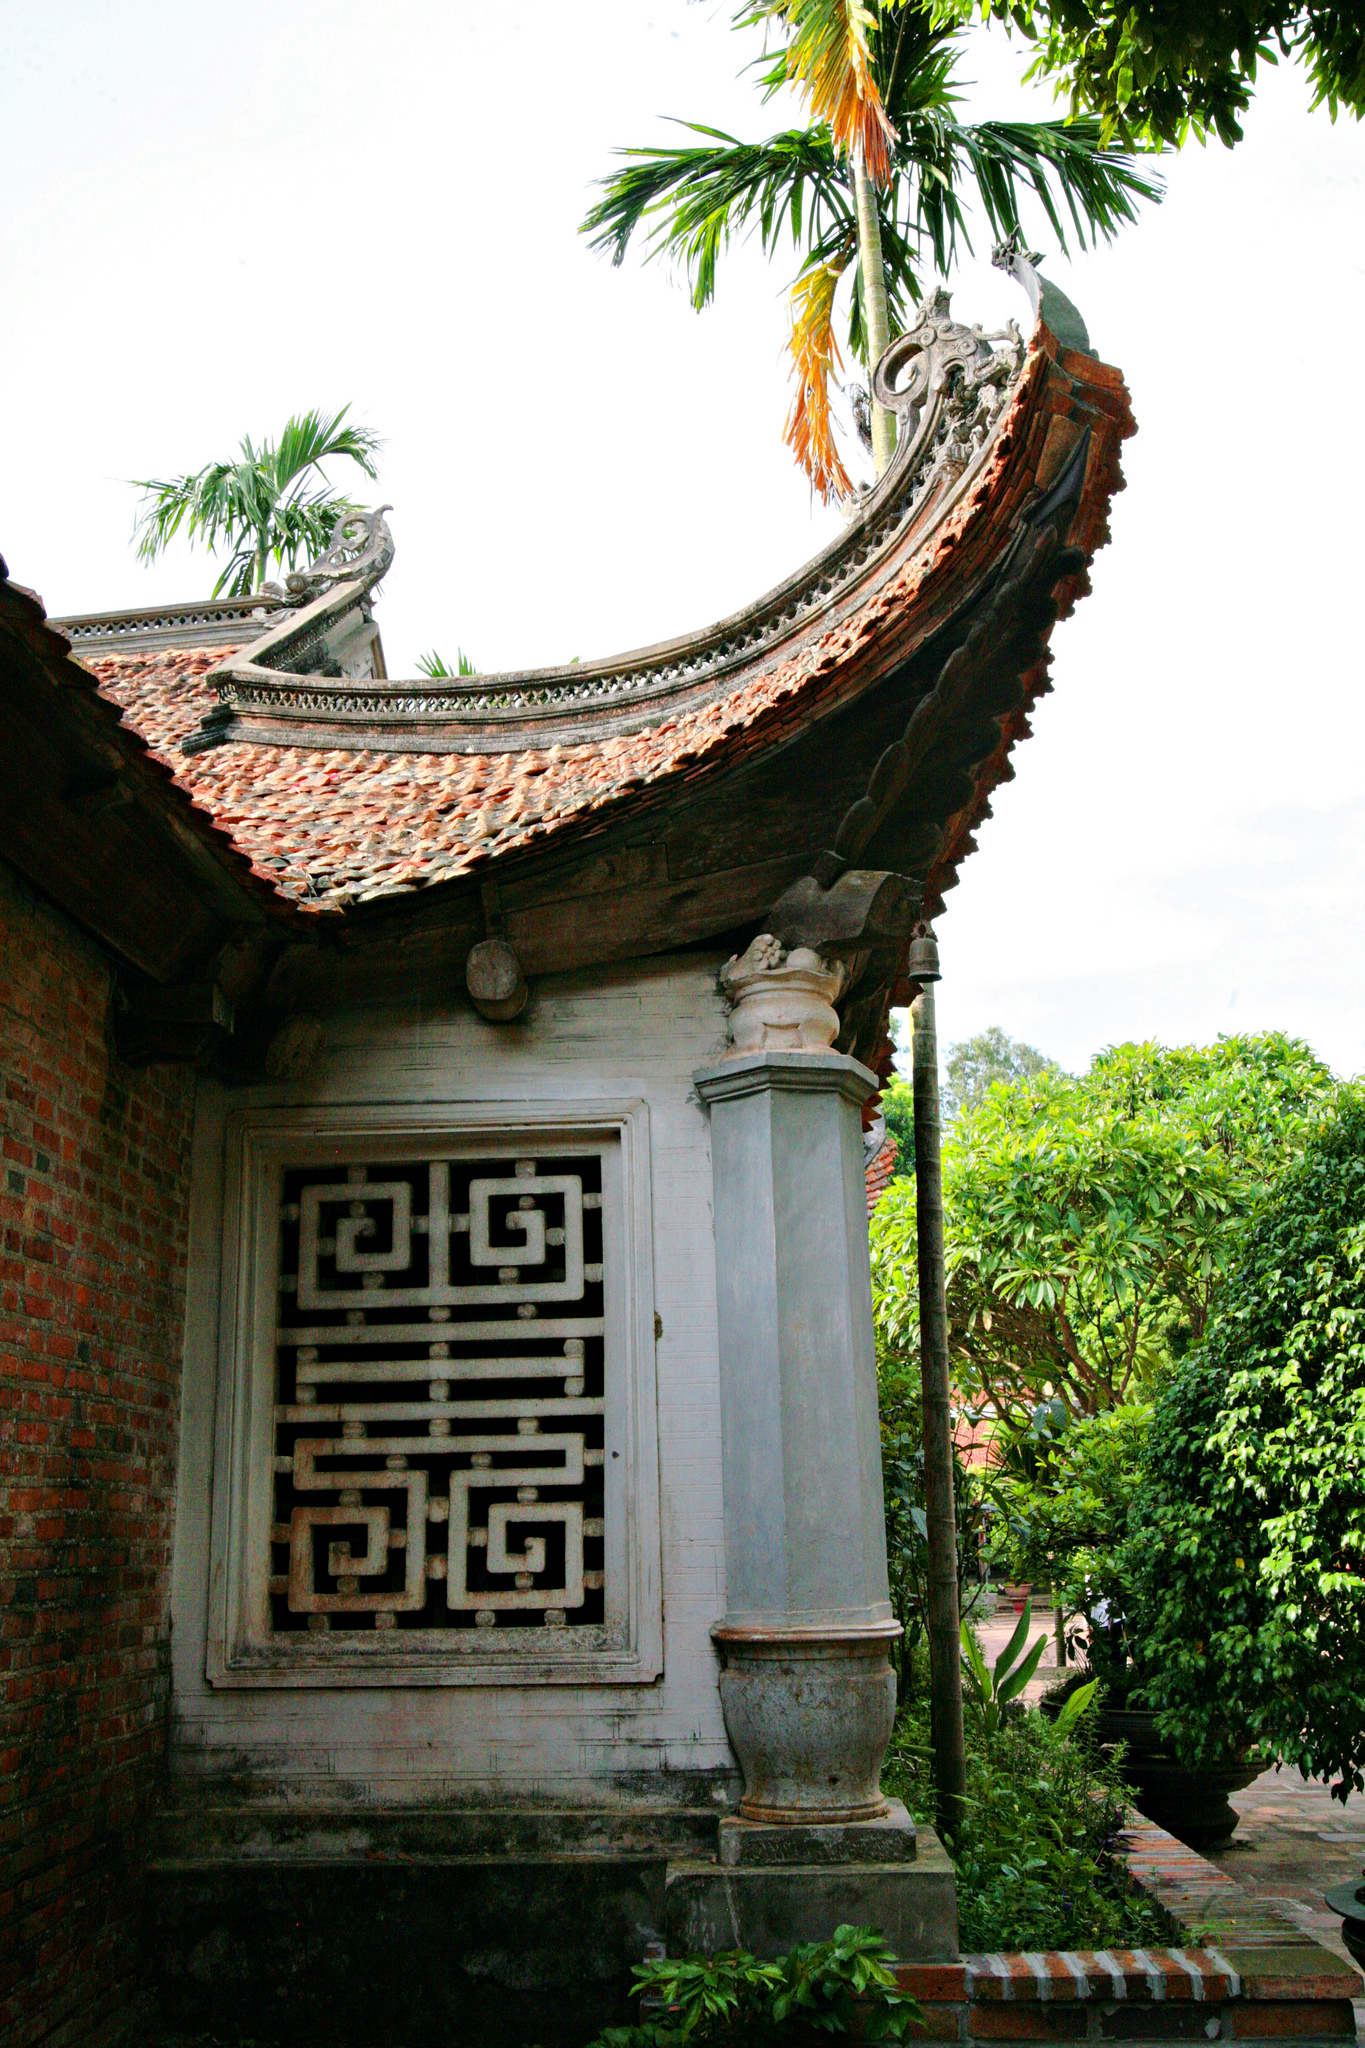 Roof architecture at Duc La Pagoda, Vietnam